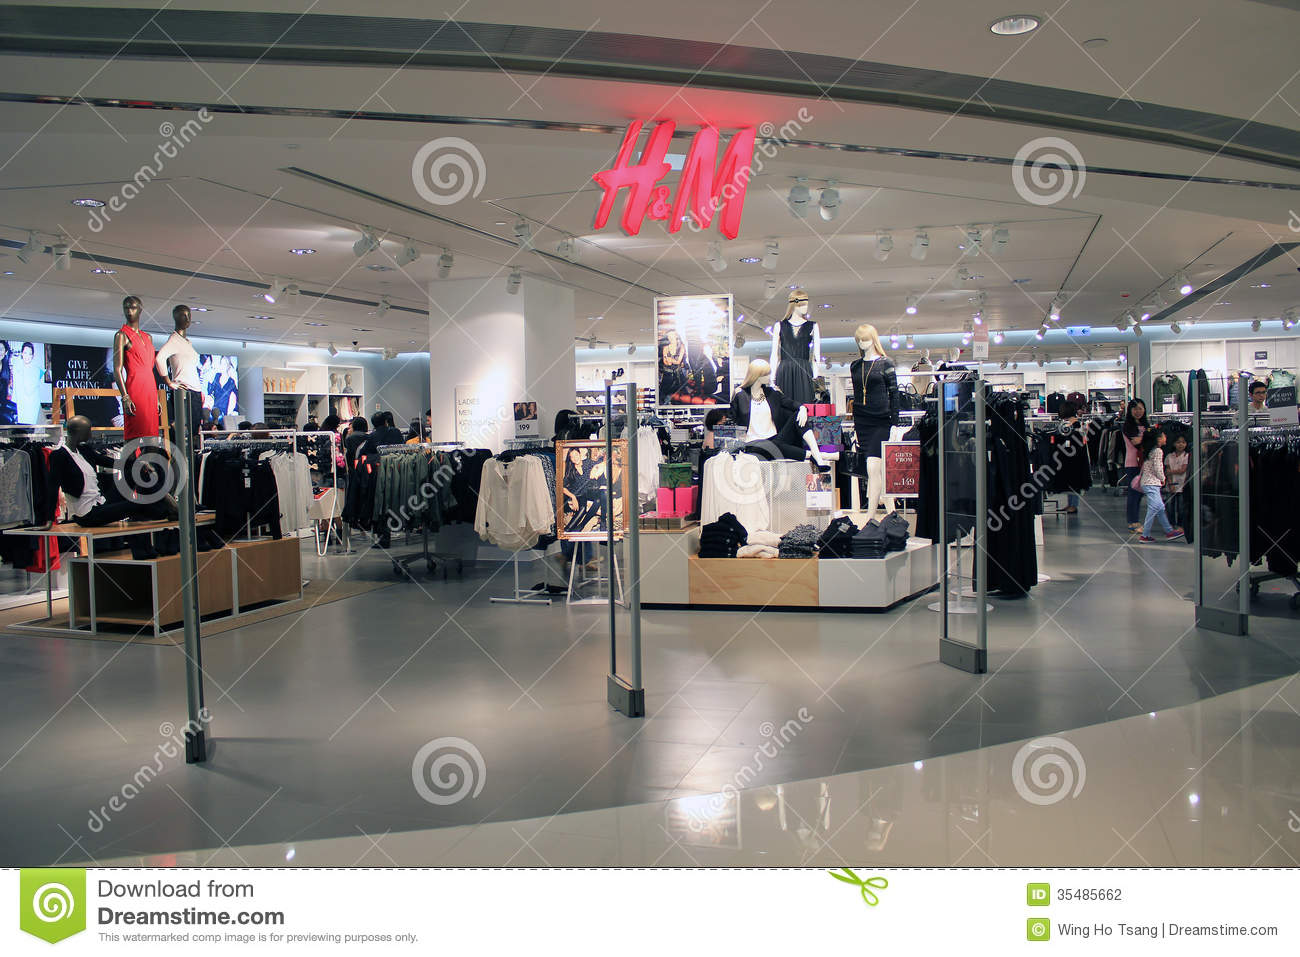 Clothes stores H and m clothing store